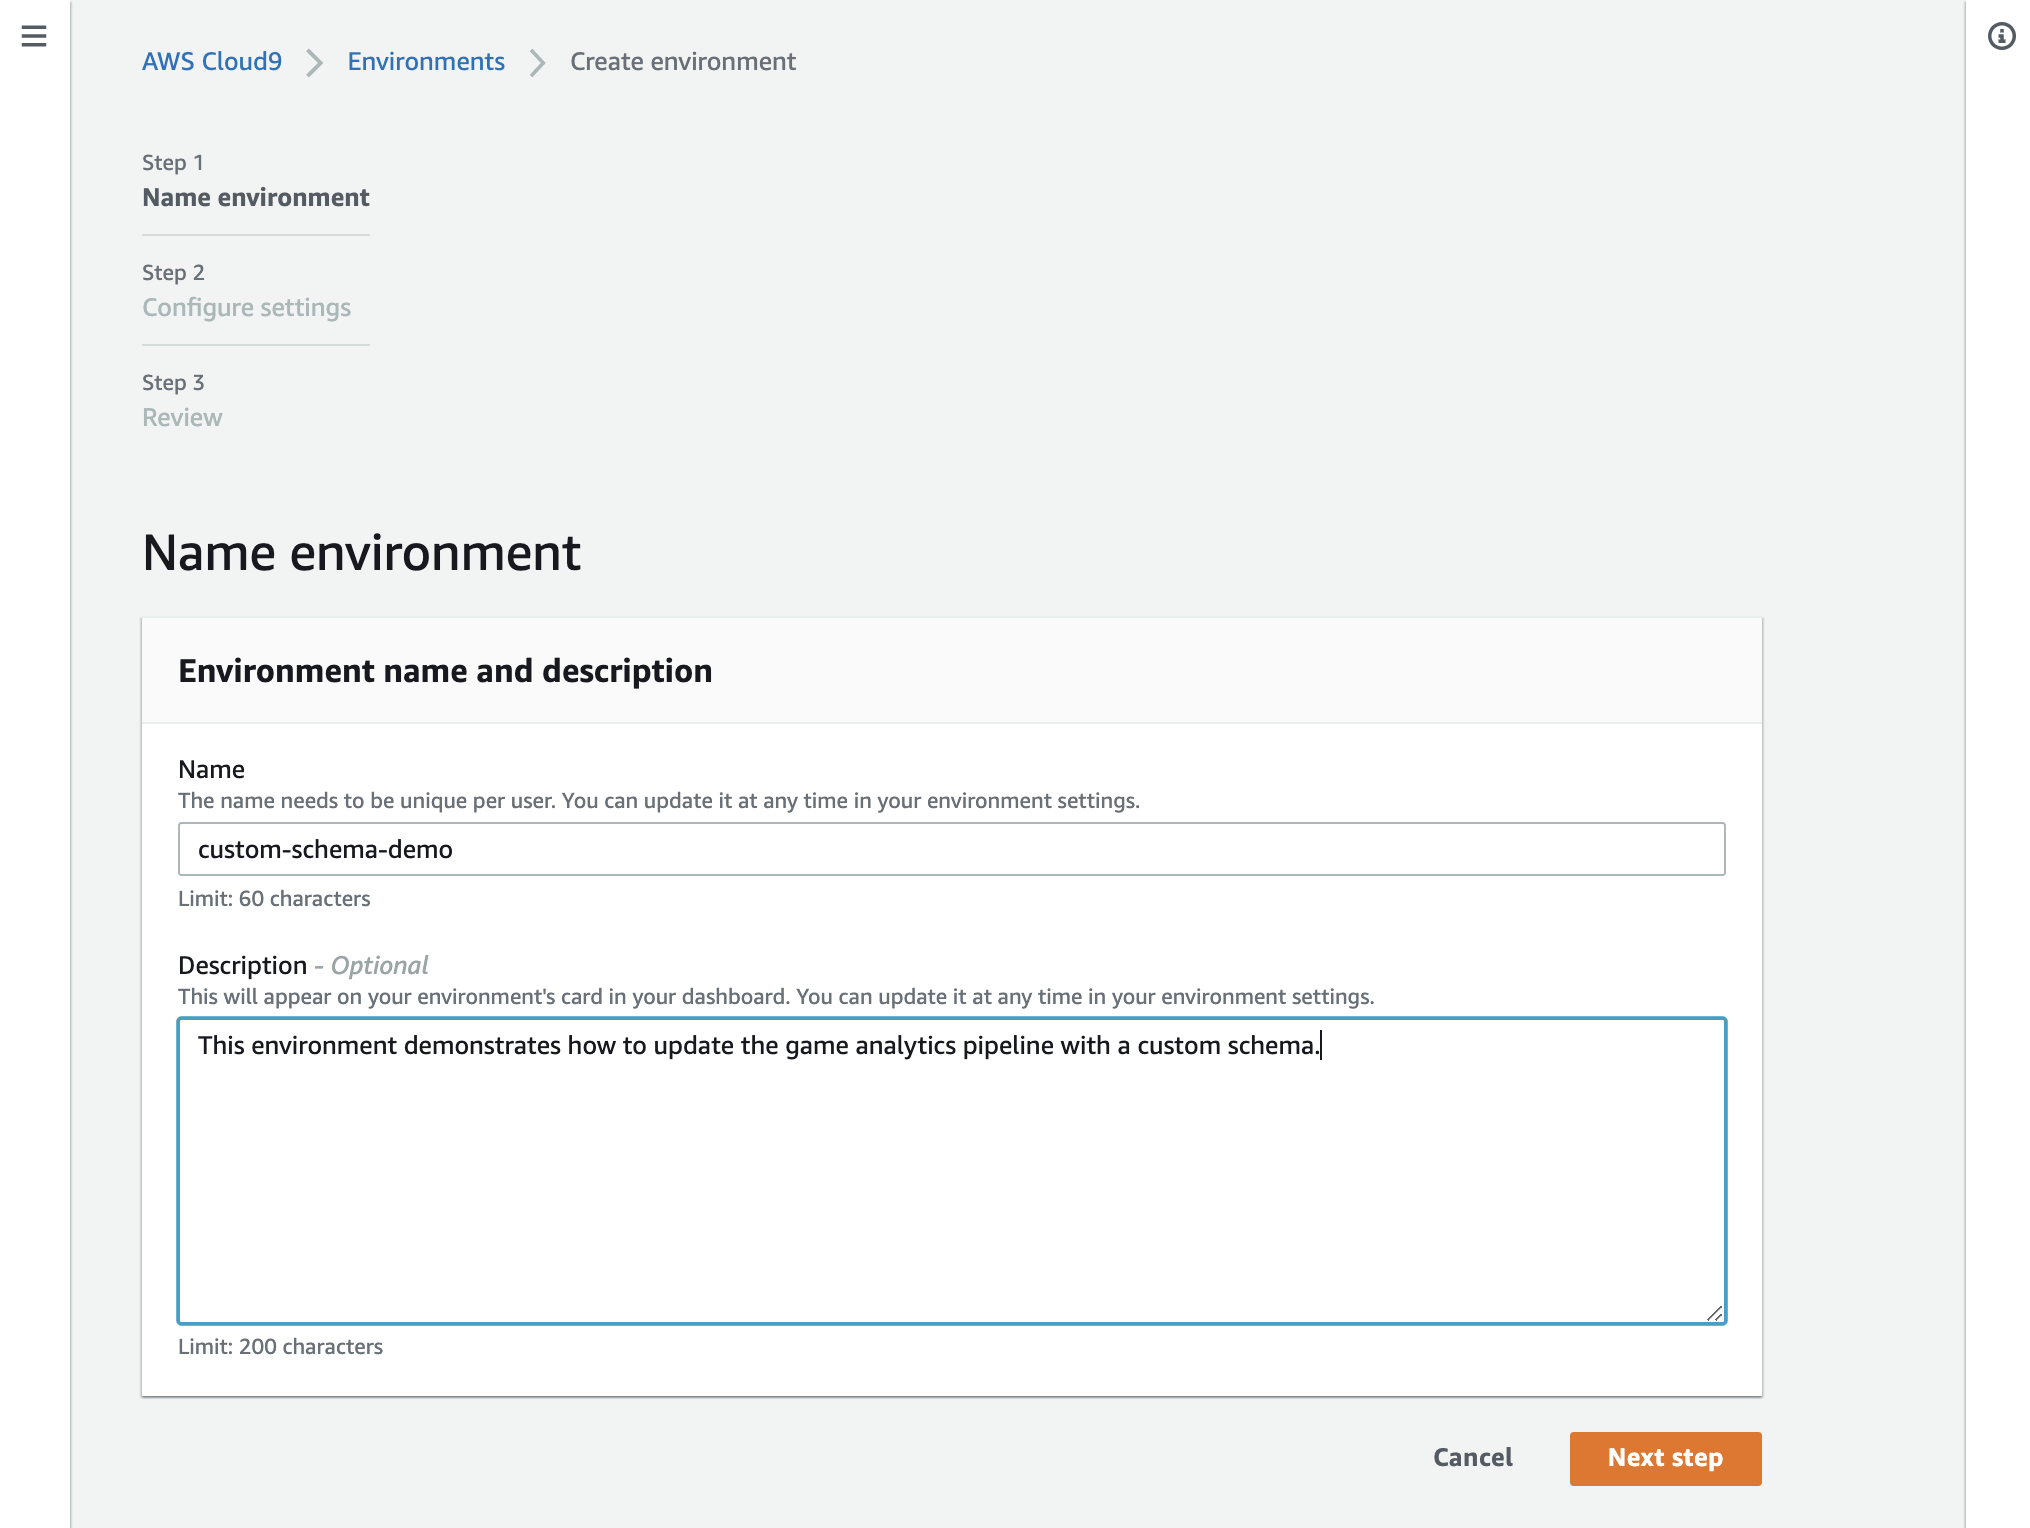 Image shows how to name the Cloud9 environment within the AWS console, providing a name and description field.